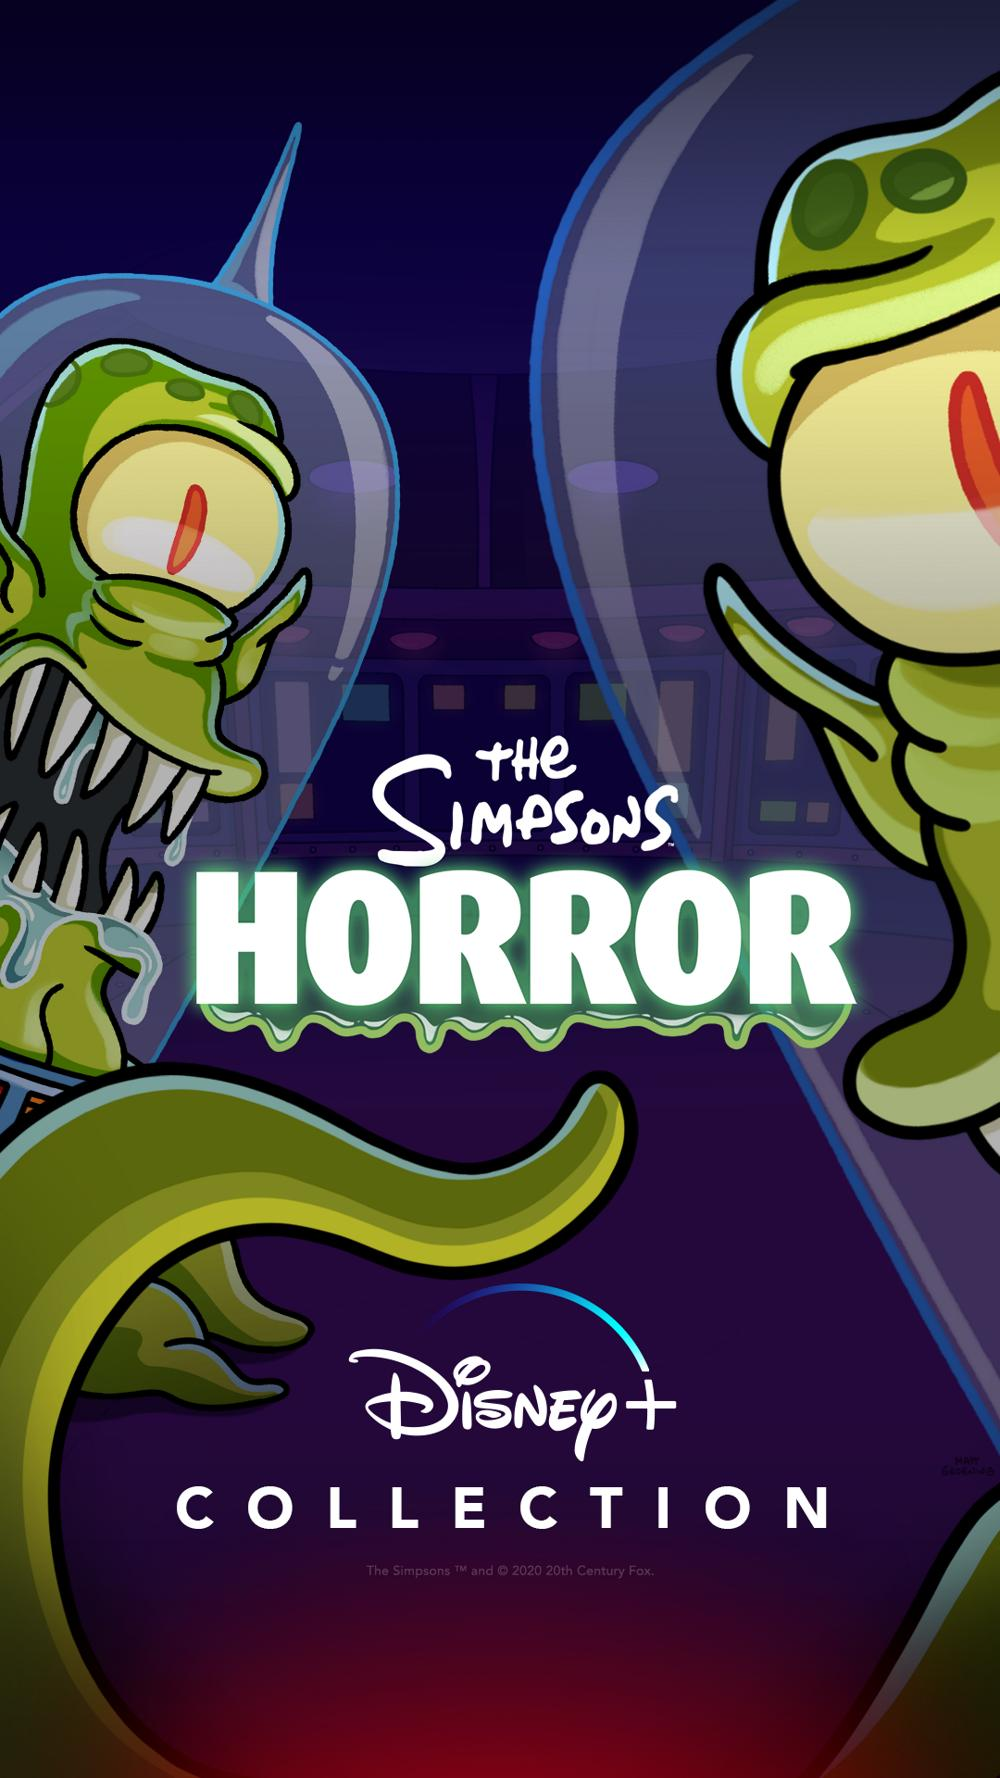 The Simpsons Horror Collection